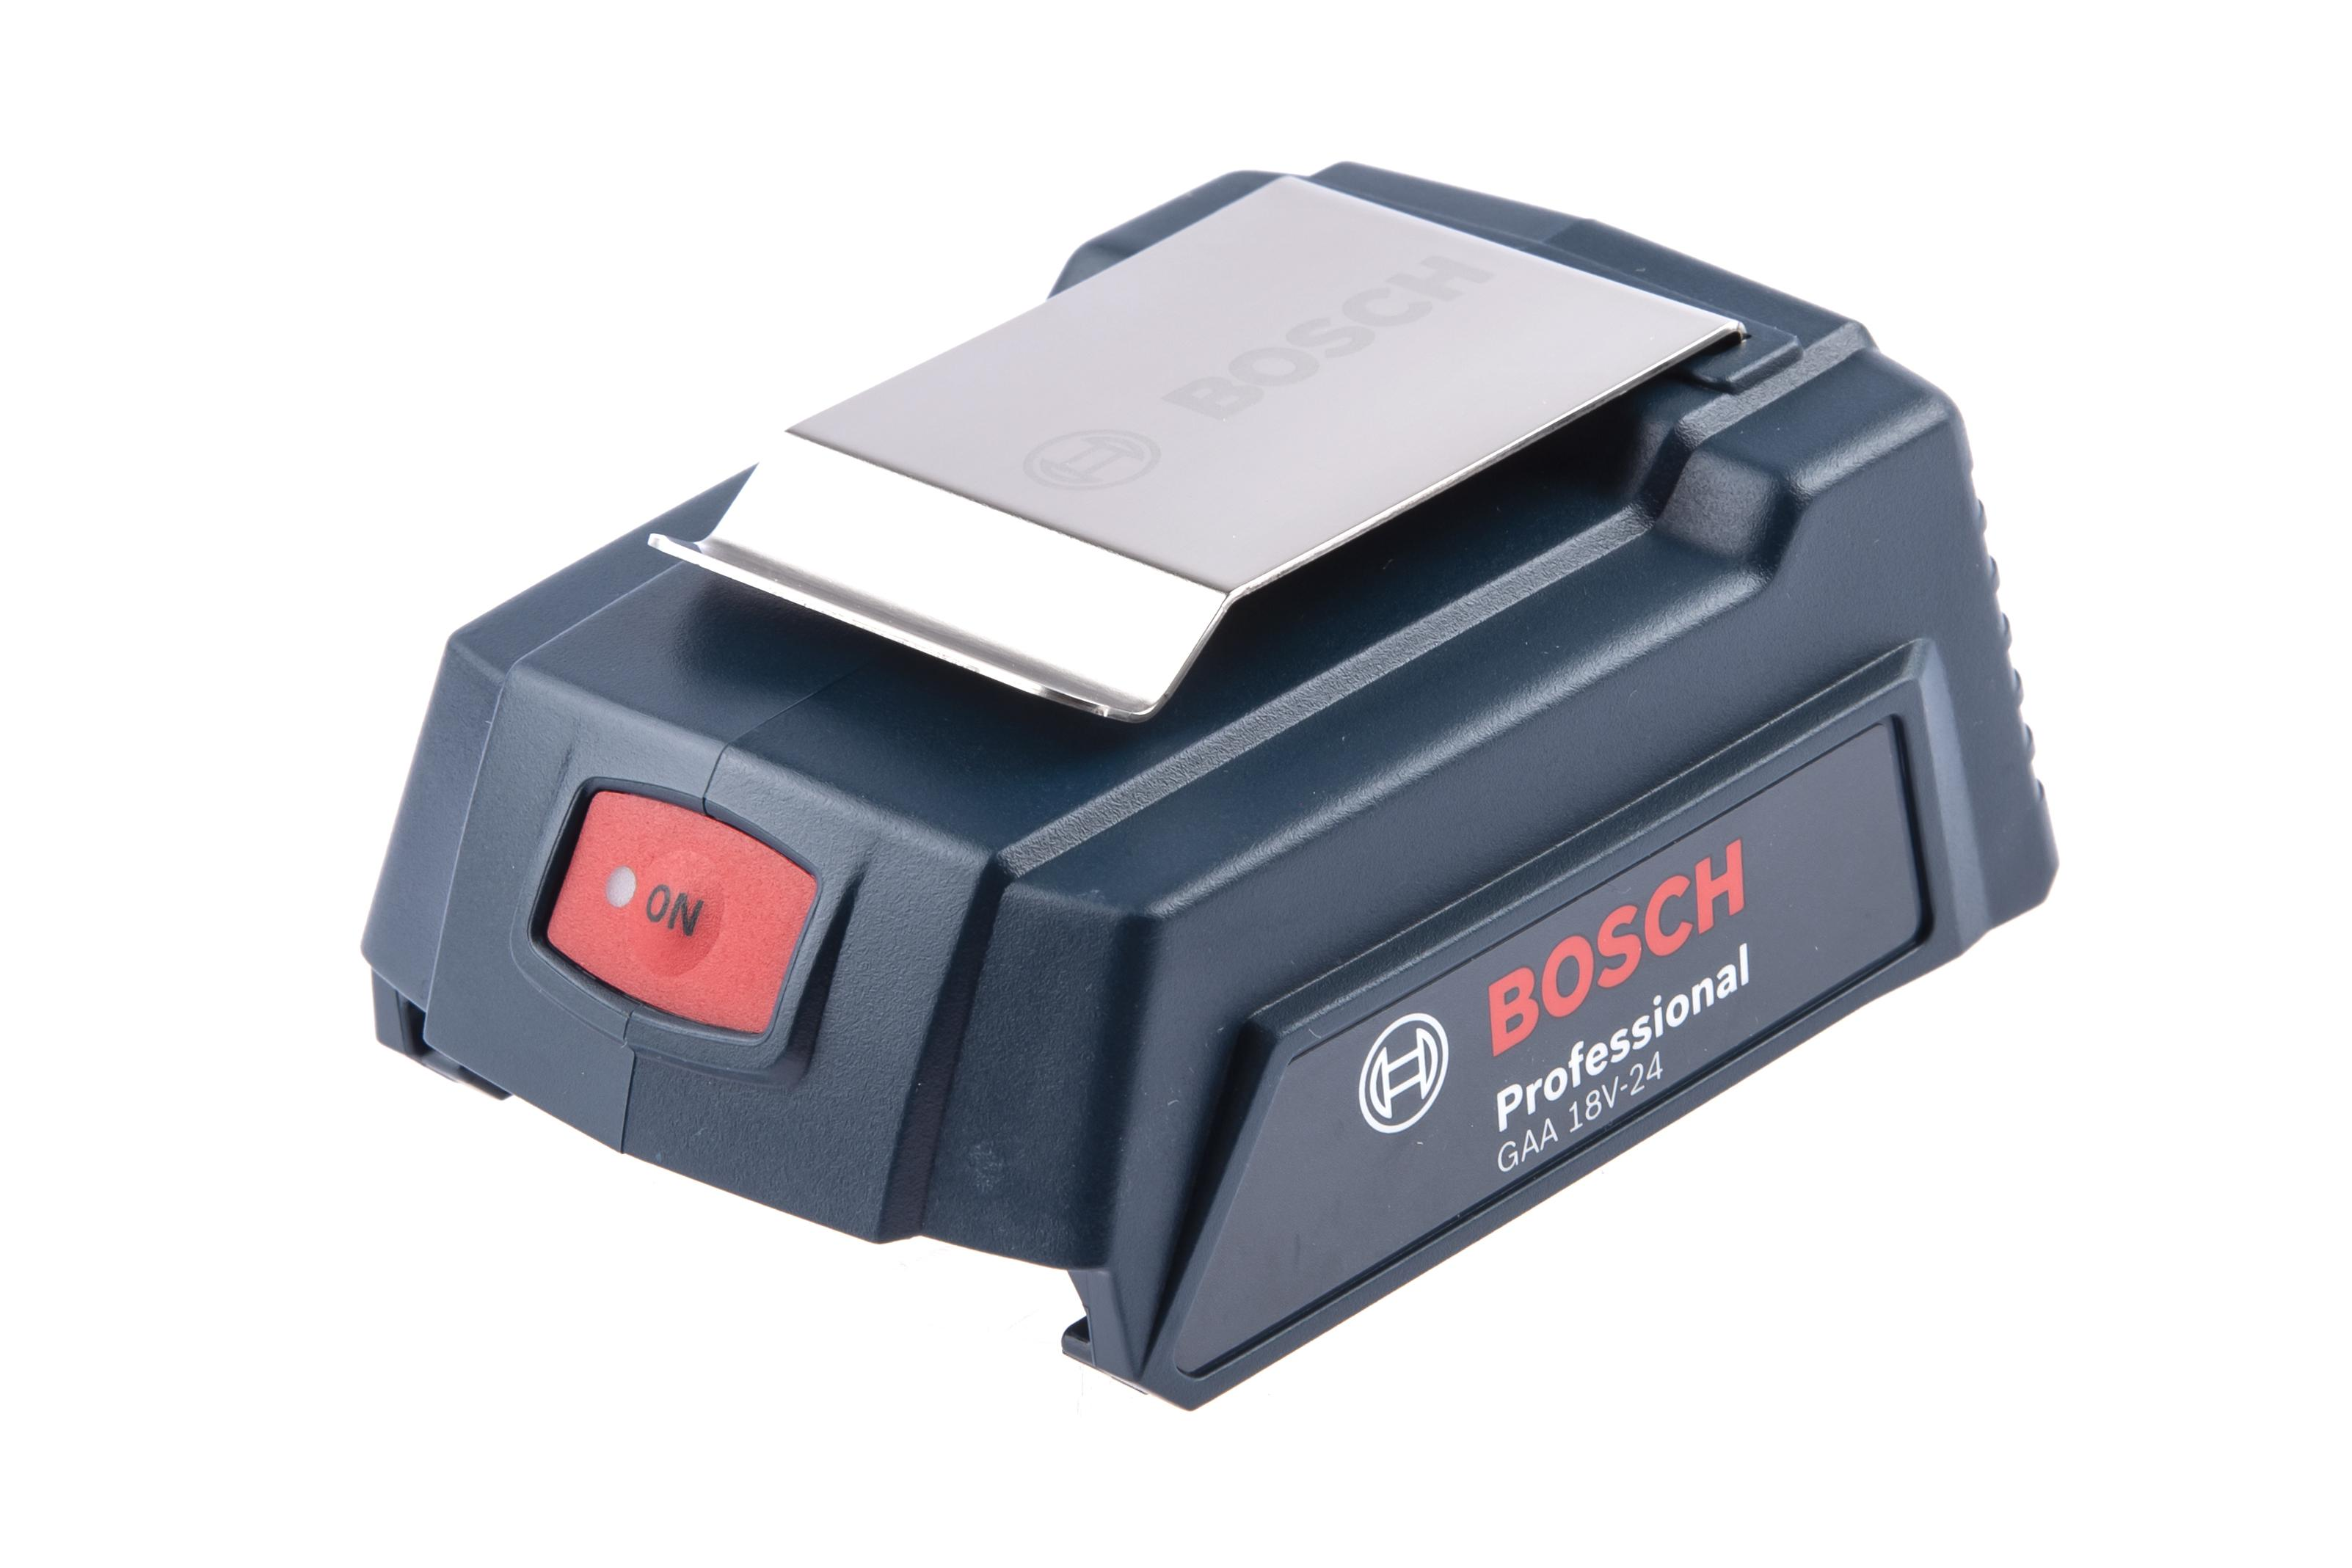 Адаптер Bosch Gaa 18v-24 набор bosch радио gml 50 power box 0 601 429 600 адаптер gaa 18v 24